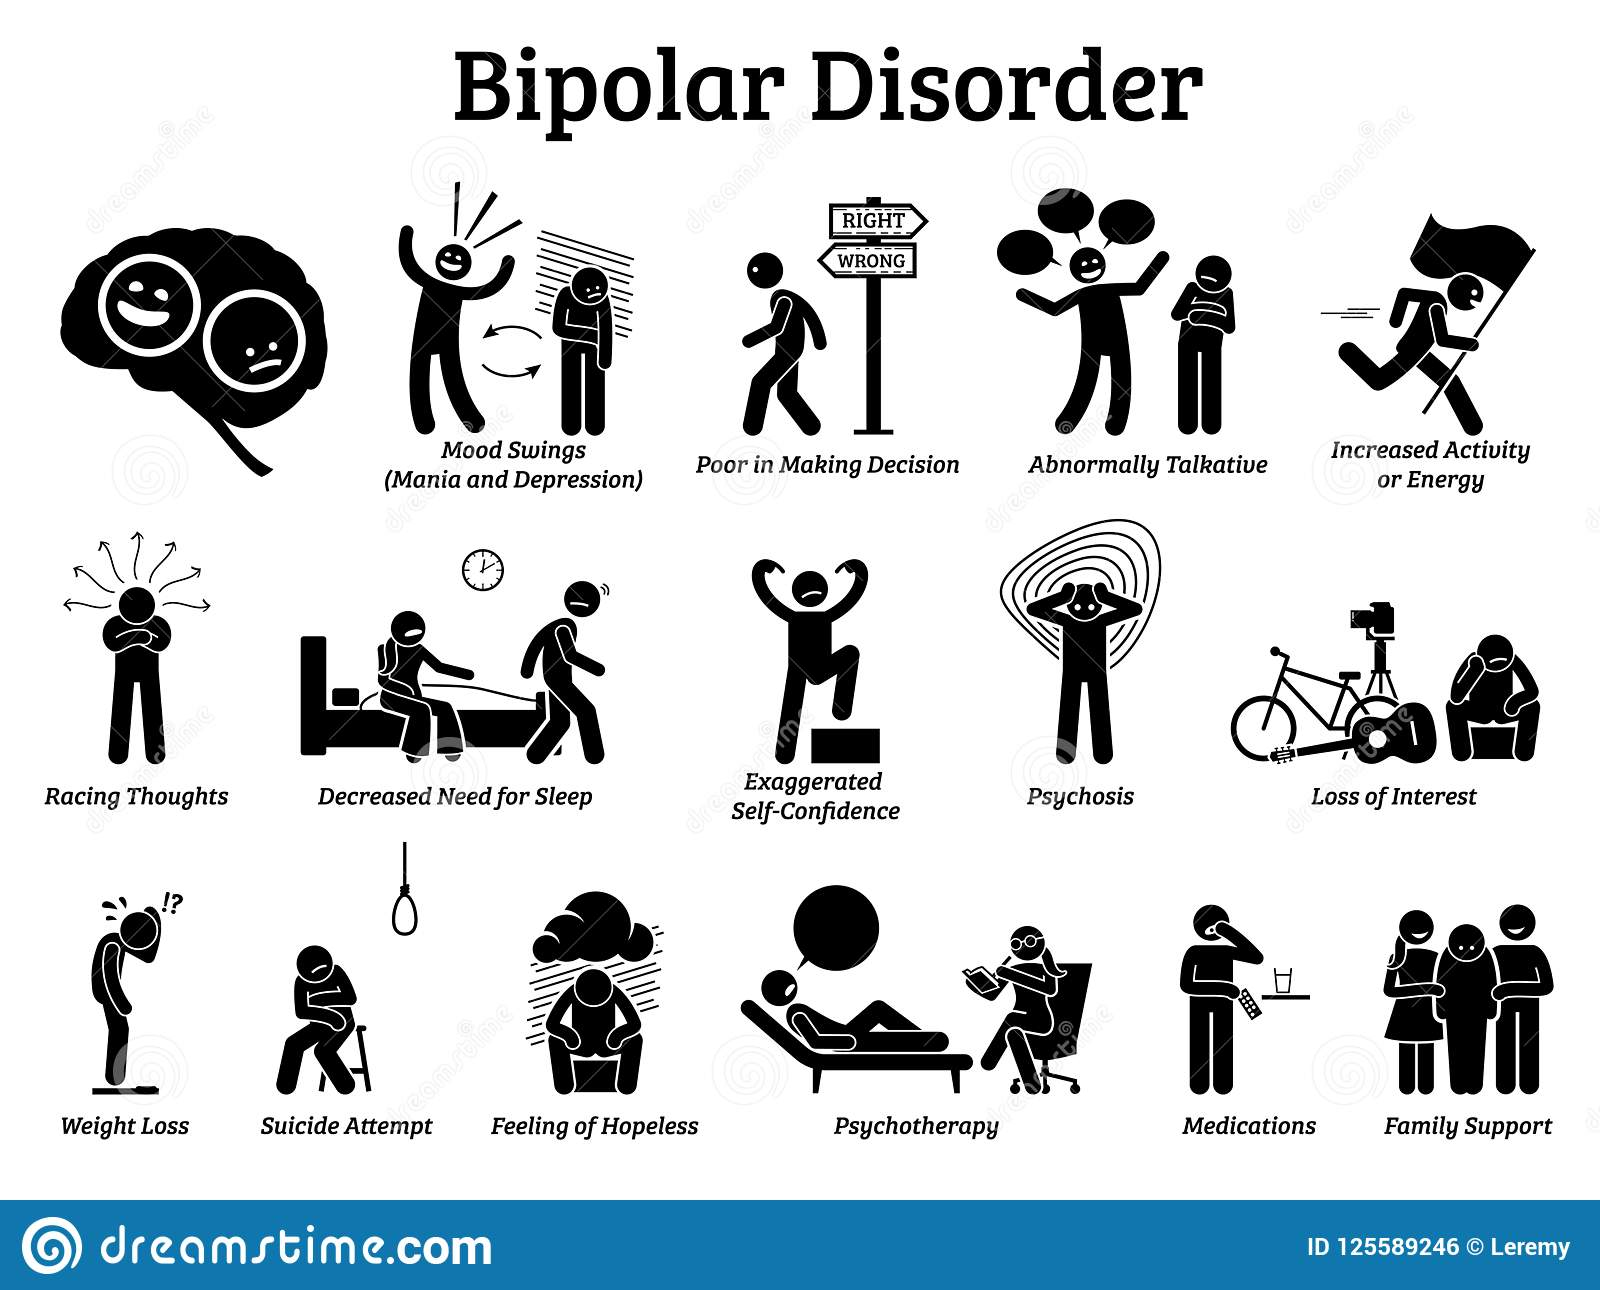 bipolar mental disorder icons stock vector illustration ofillustrations show signs and symptoms of bipolar disorder on mania and depression behaviors he has mood swings and needs psychotherapy, medications,